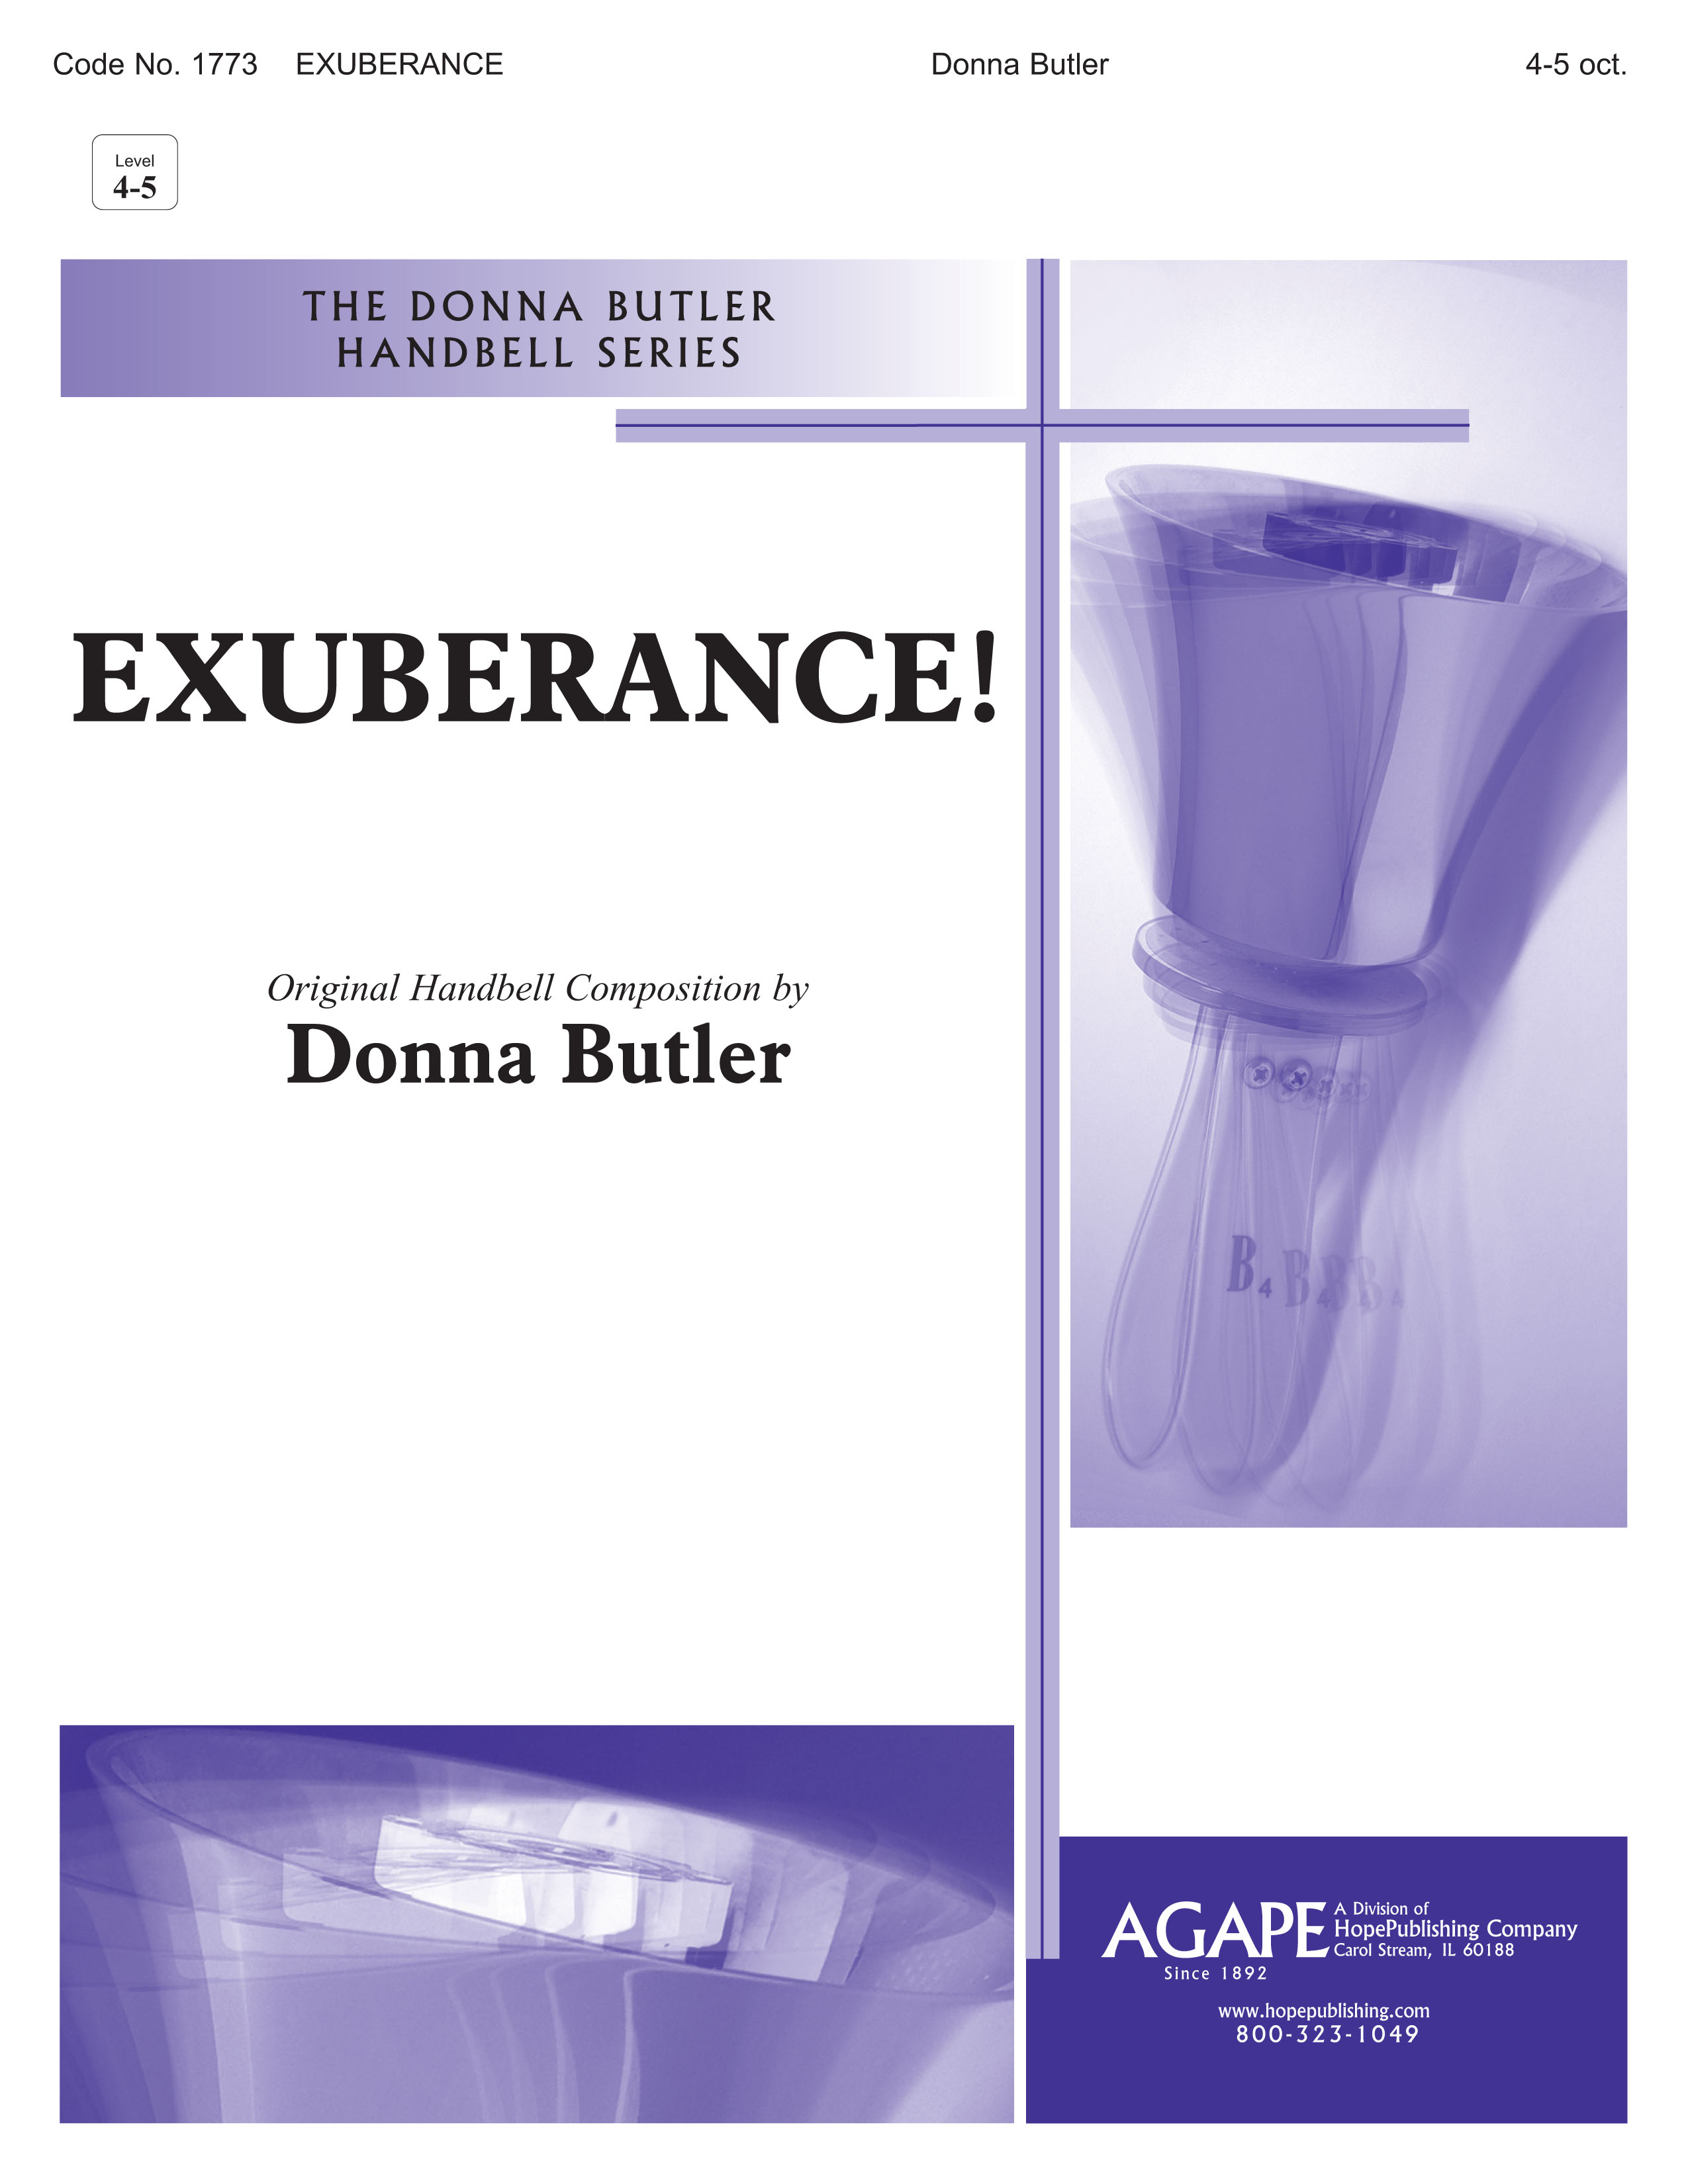 Exuberance - 4-5 Oct. Cover Image